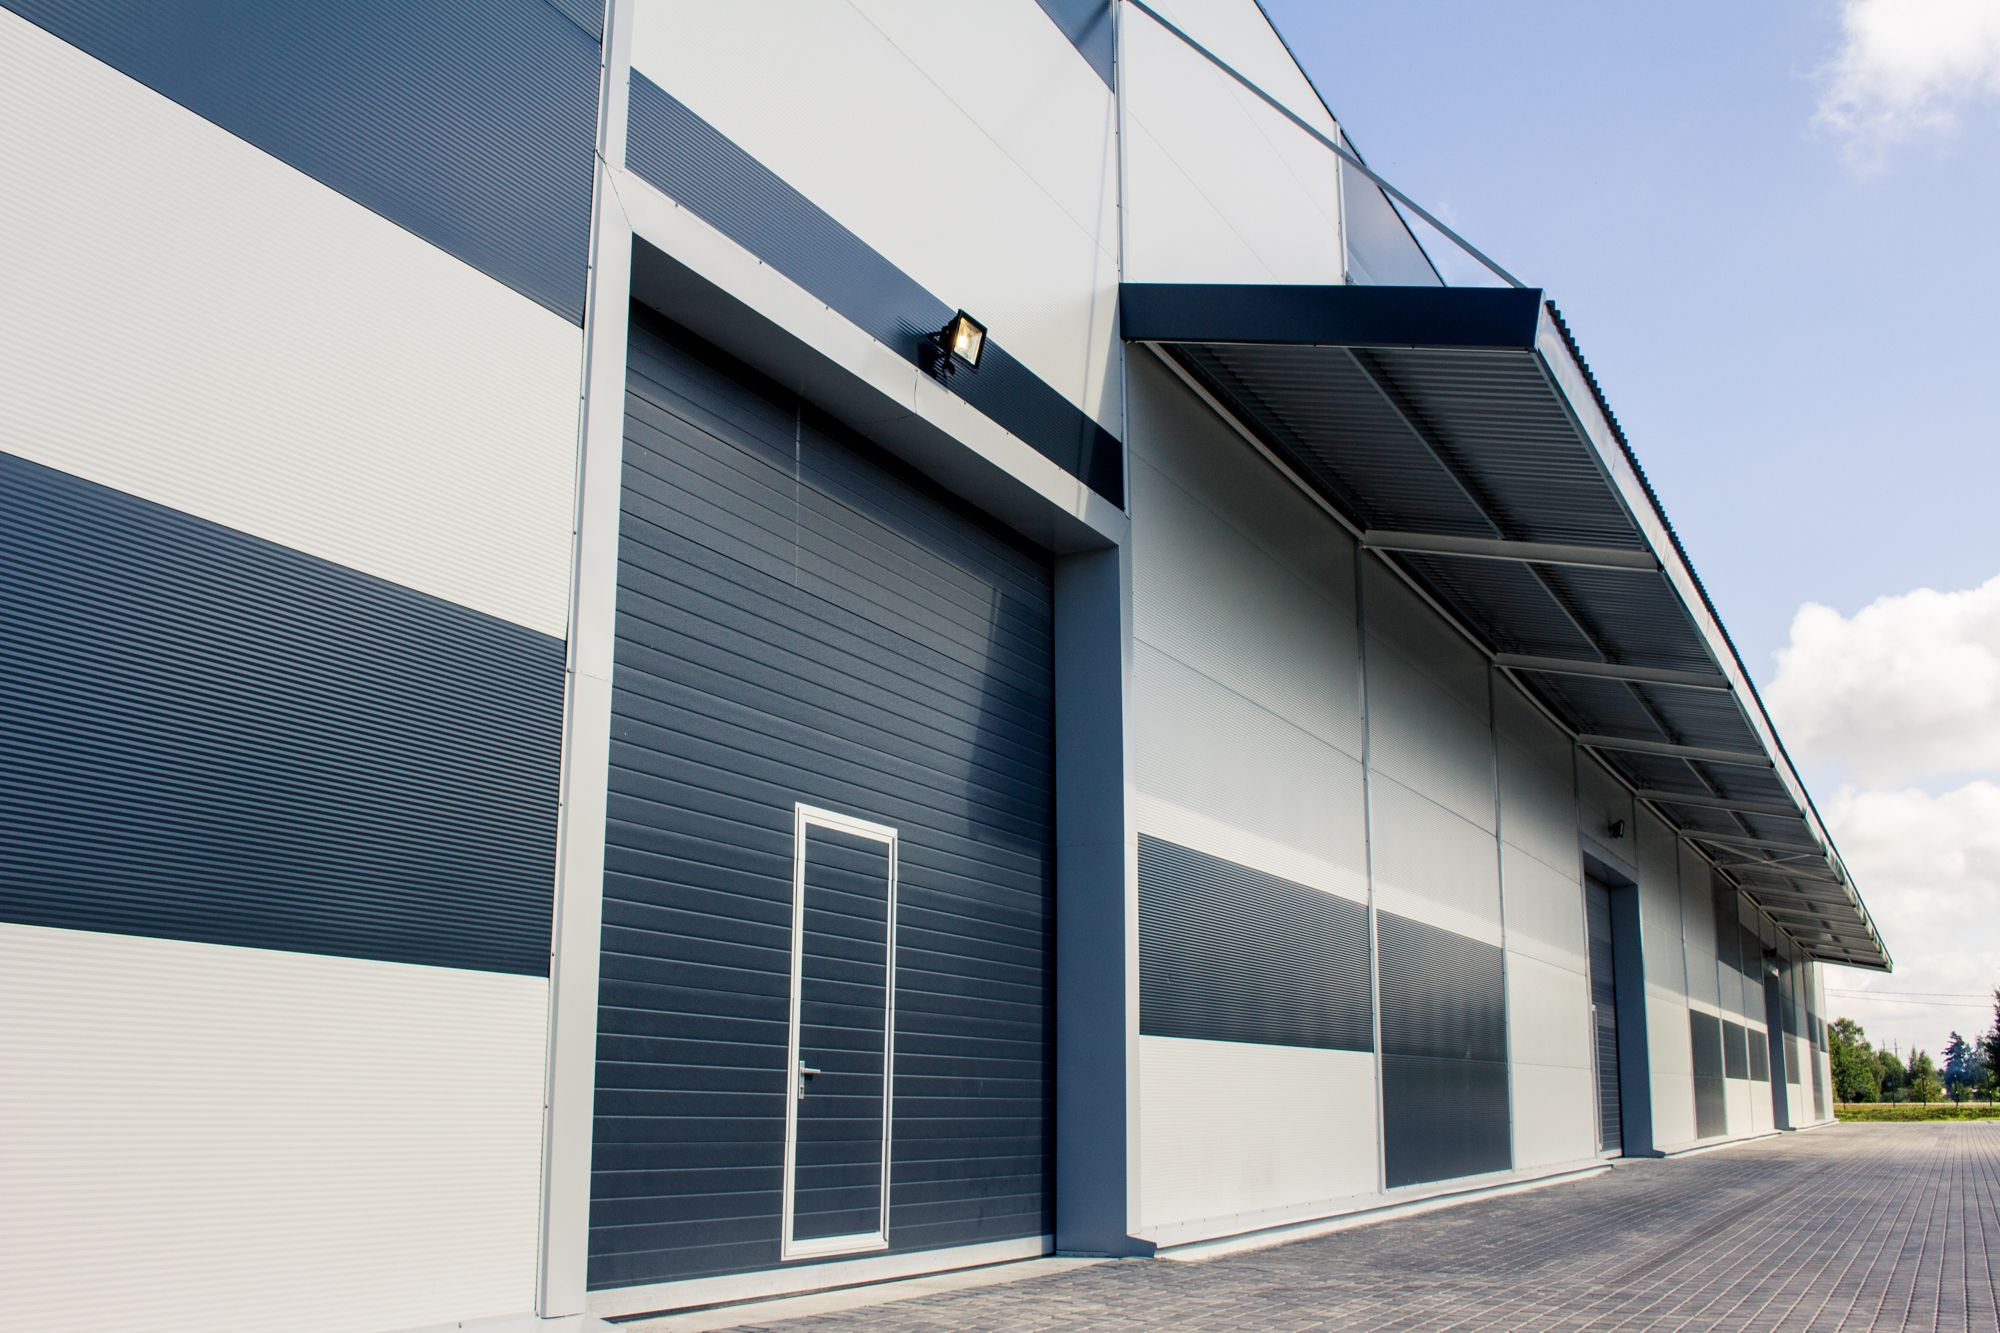 Industrial Warehouse Building Industrial Warehouse Factory Architecture Metal Building Designs